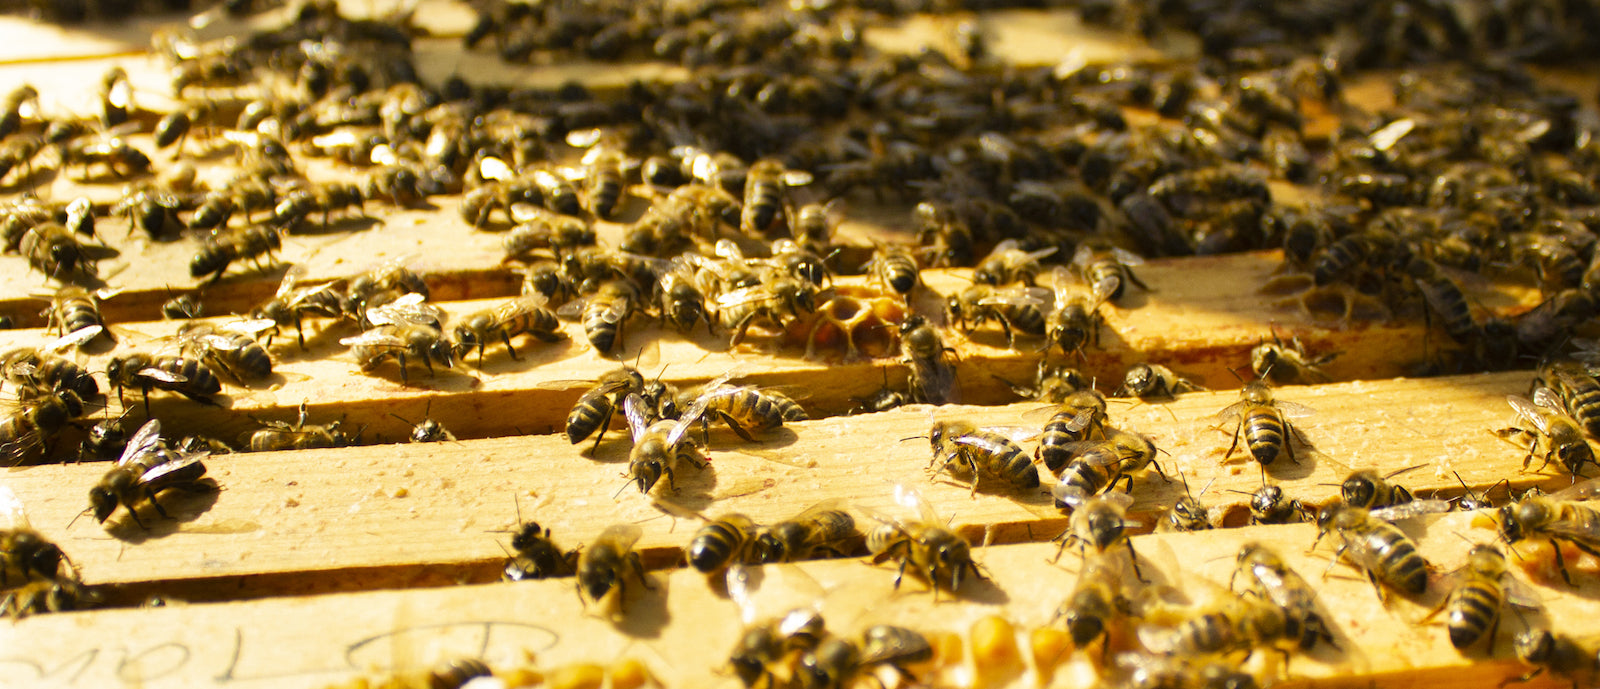 buckfast abbey honey bees